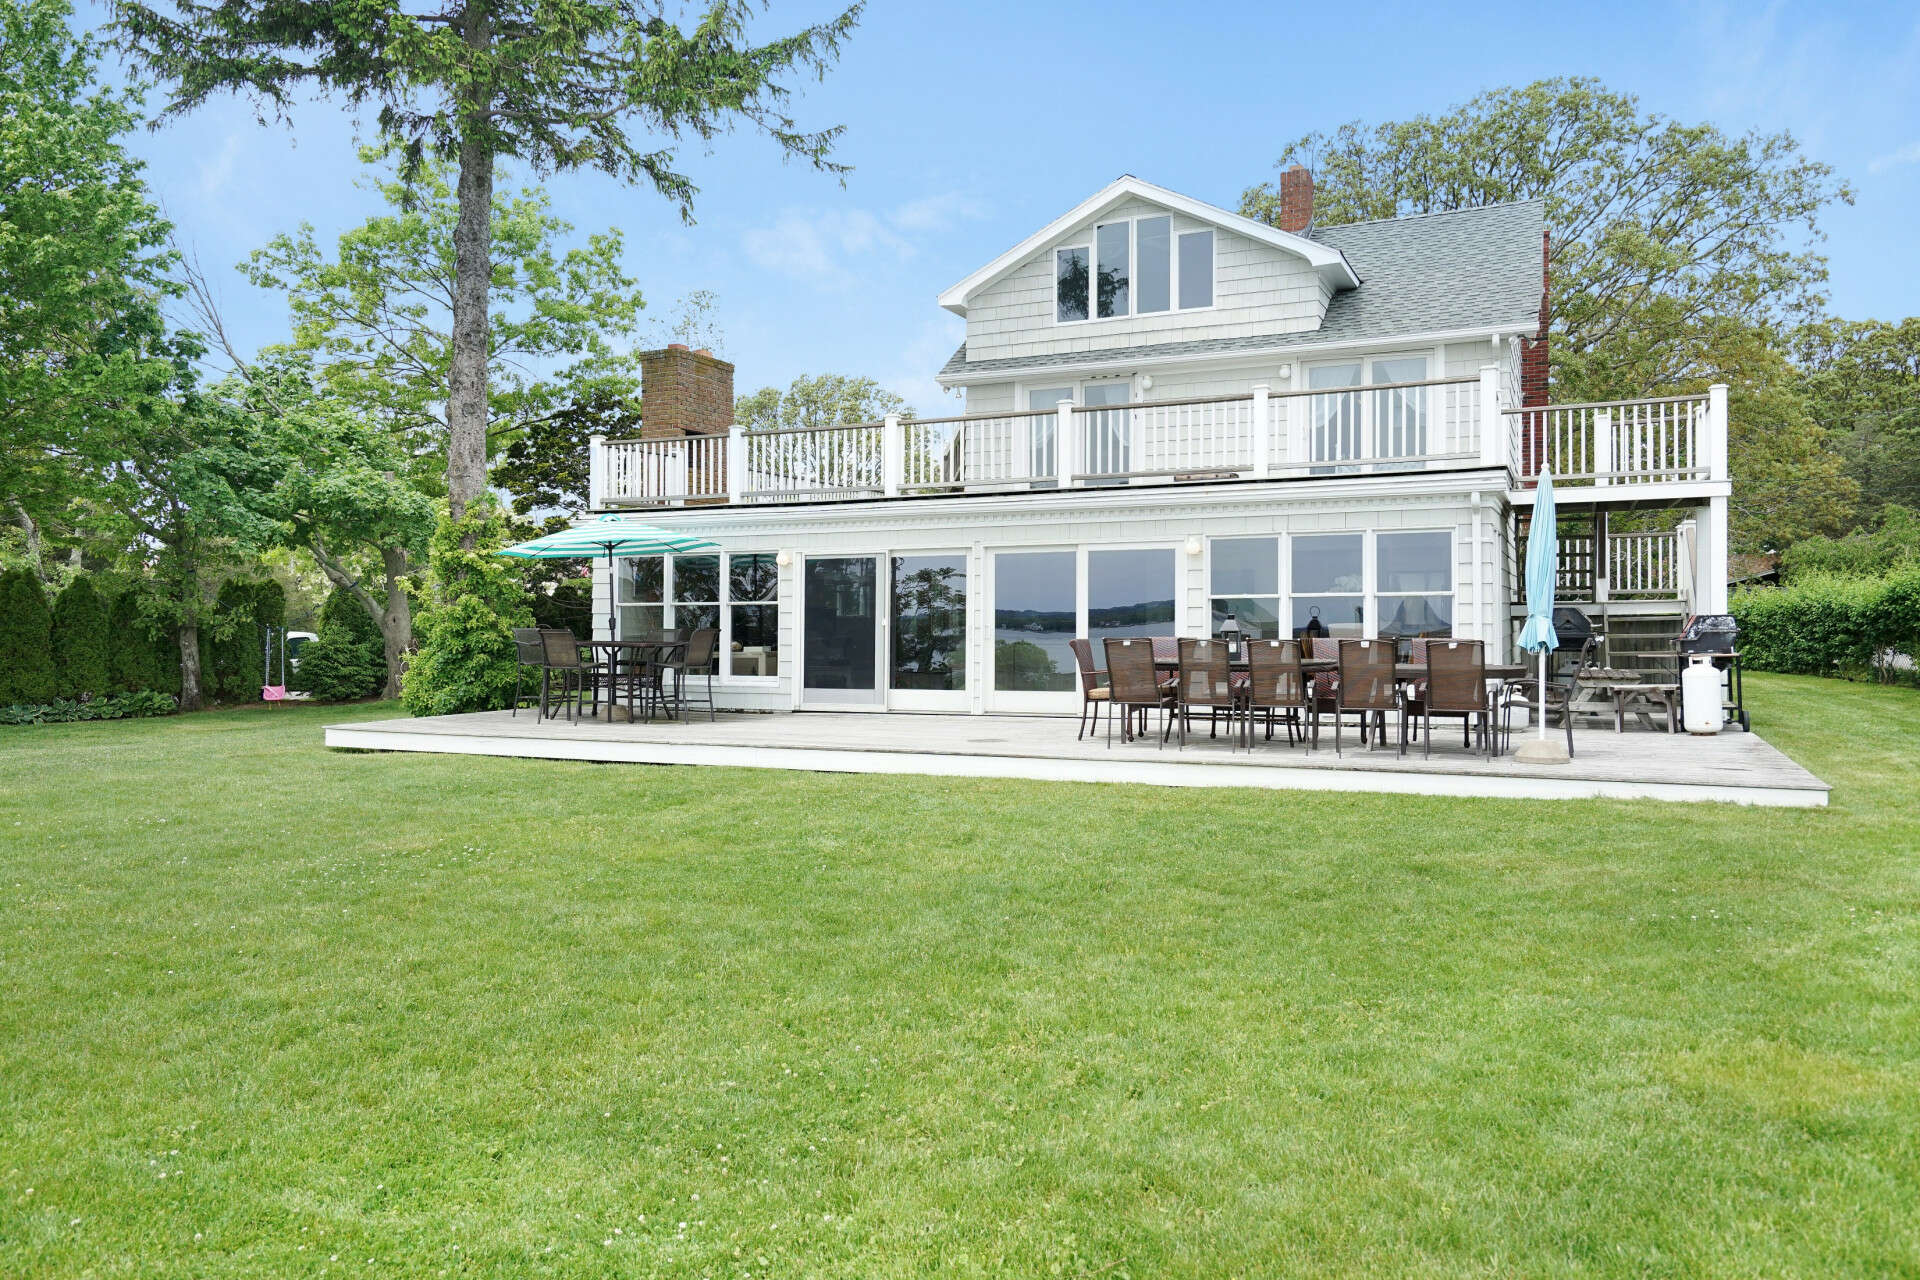 Single Family for Sale at 10 Meeting House Cr Rd Aquebogue, New York 11931 United States